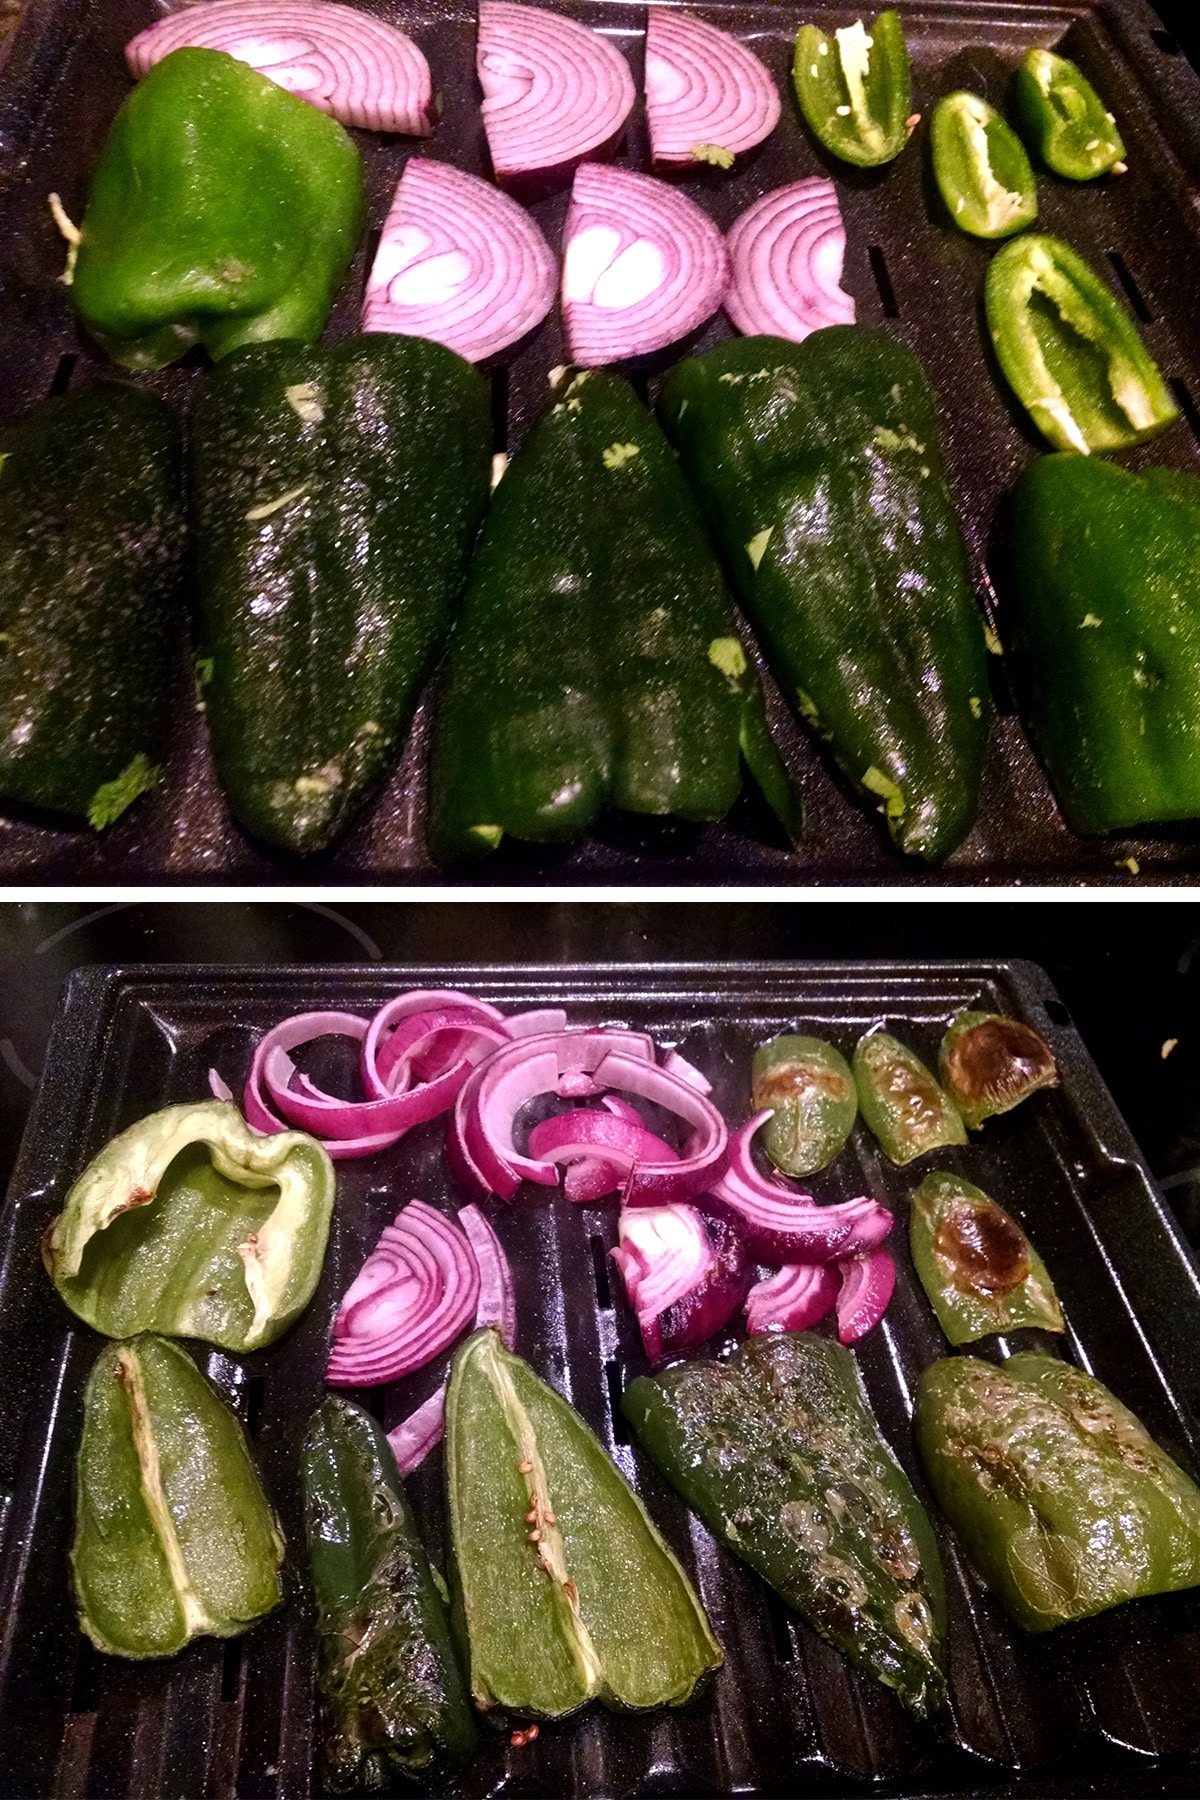 Halved poblanos, green bell peppers, and jalapenos, along with slices of red onion, on a broiler tray.